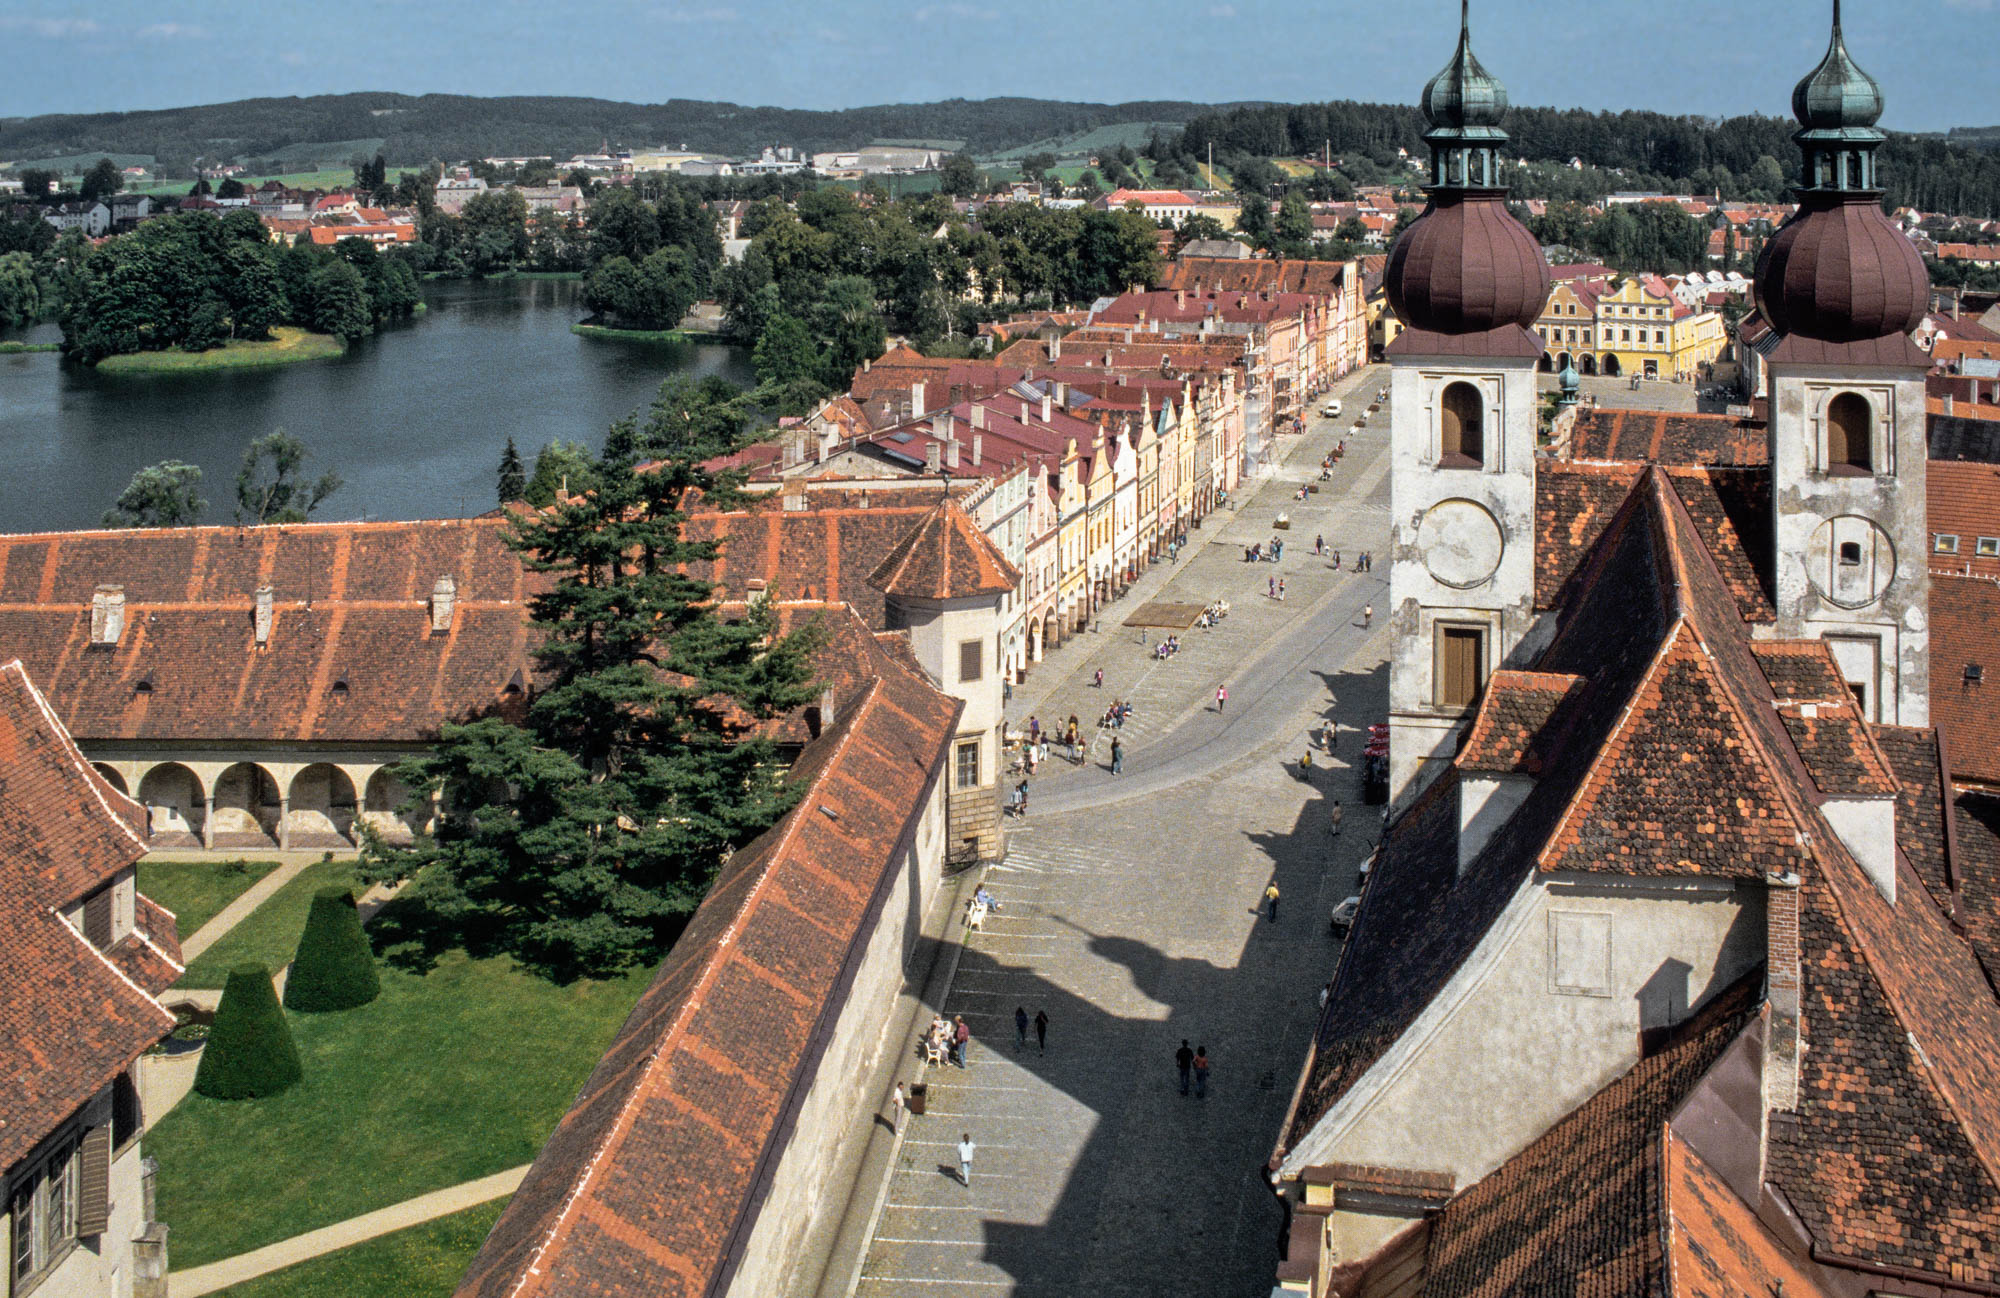 Telc from St James's Church tower